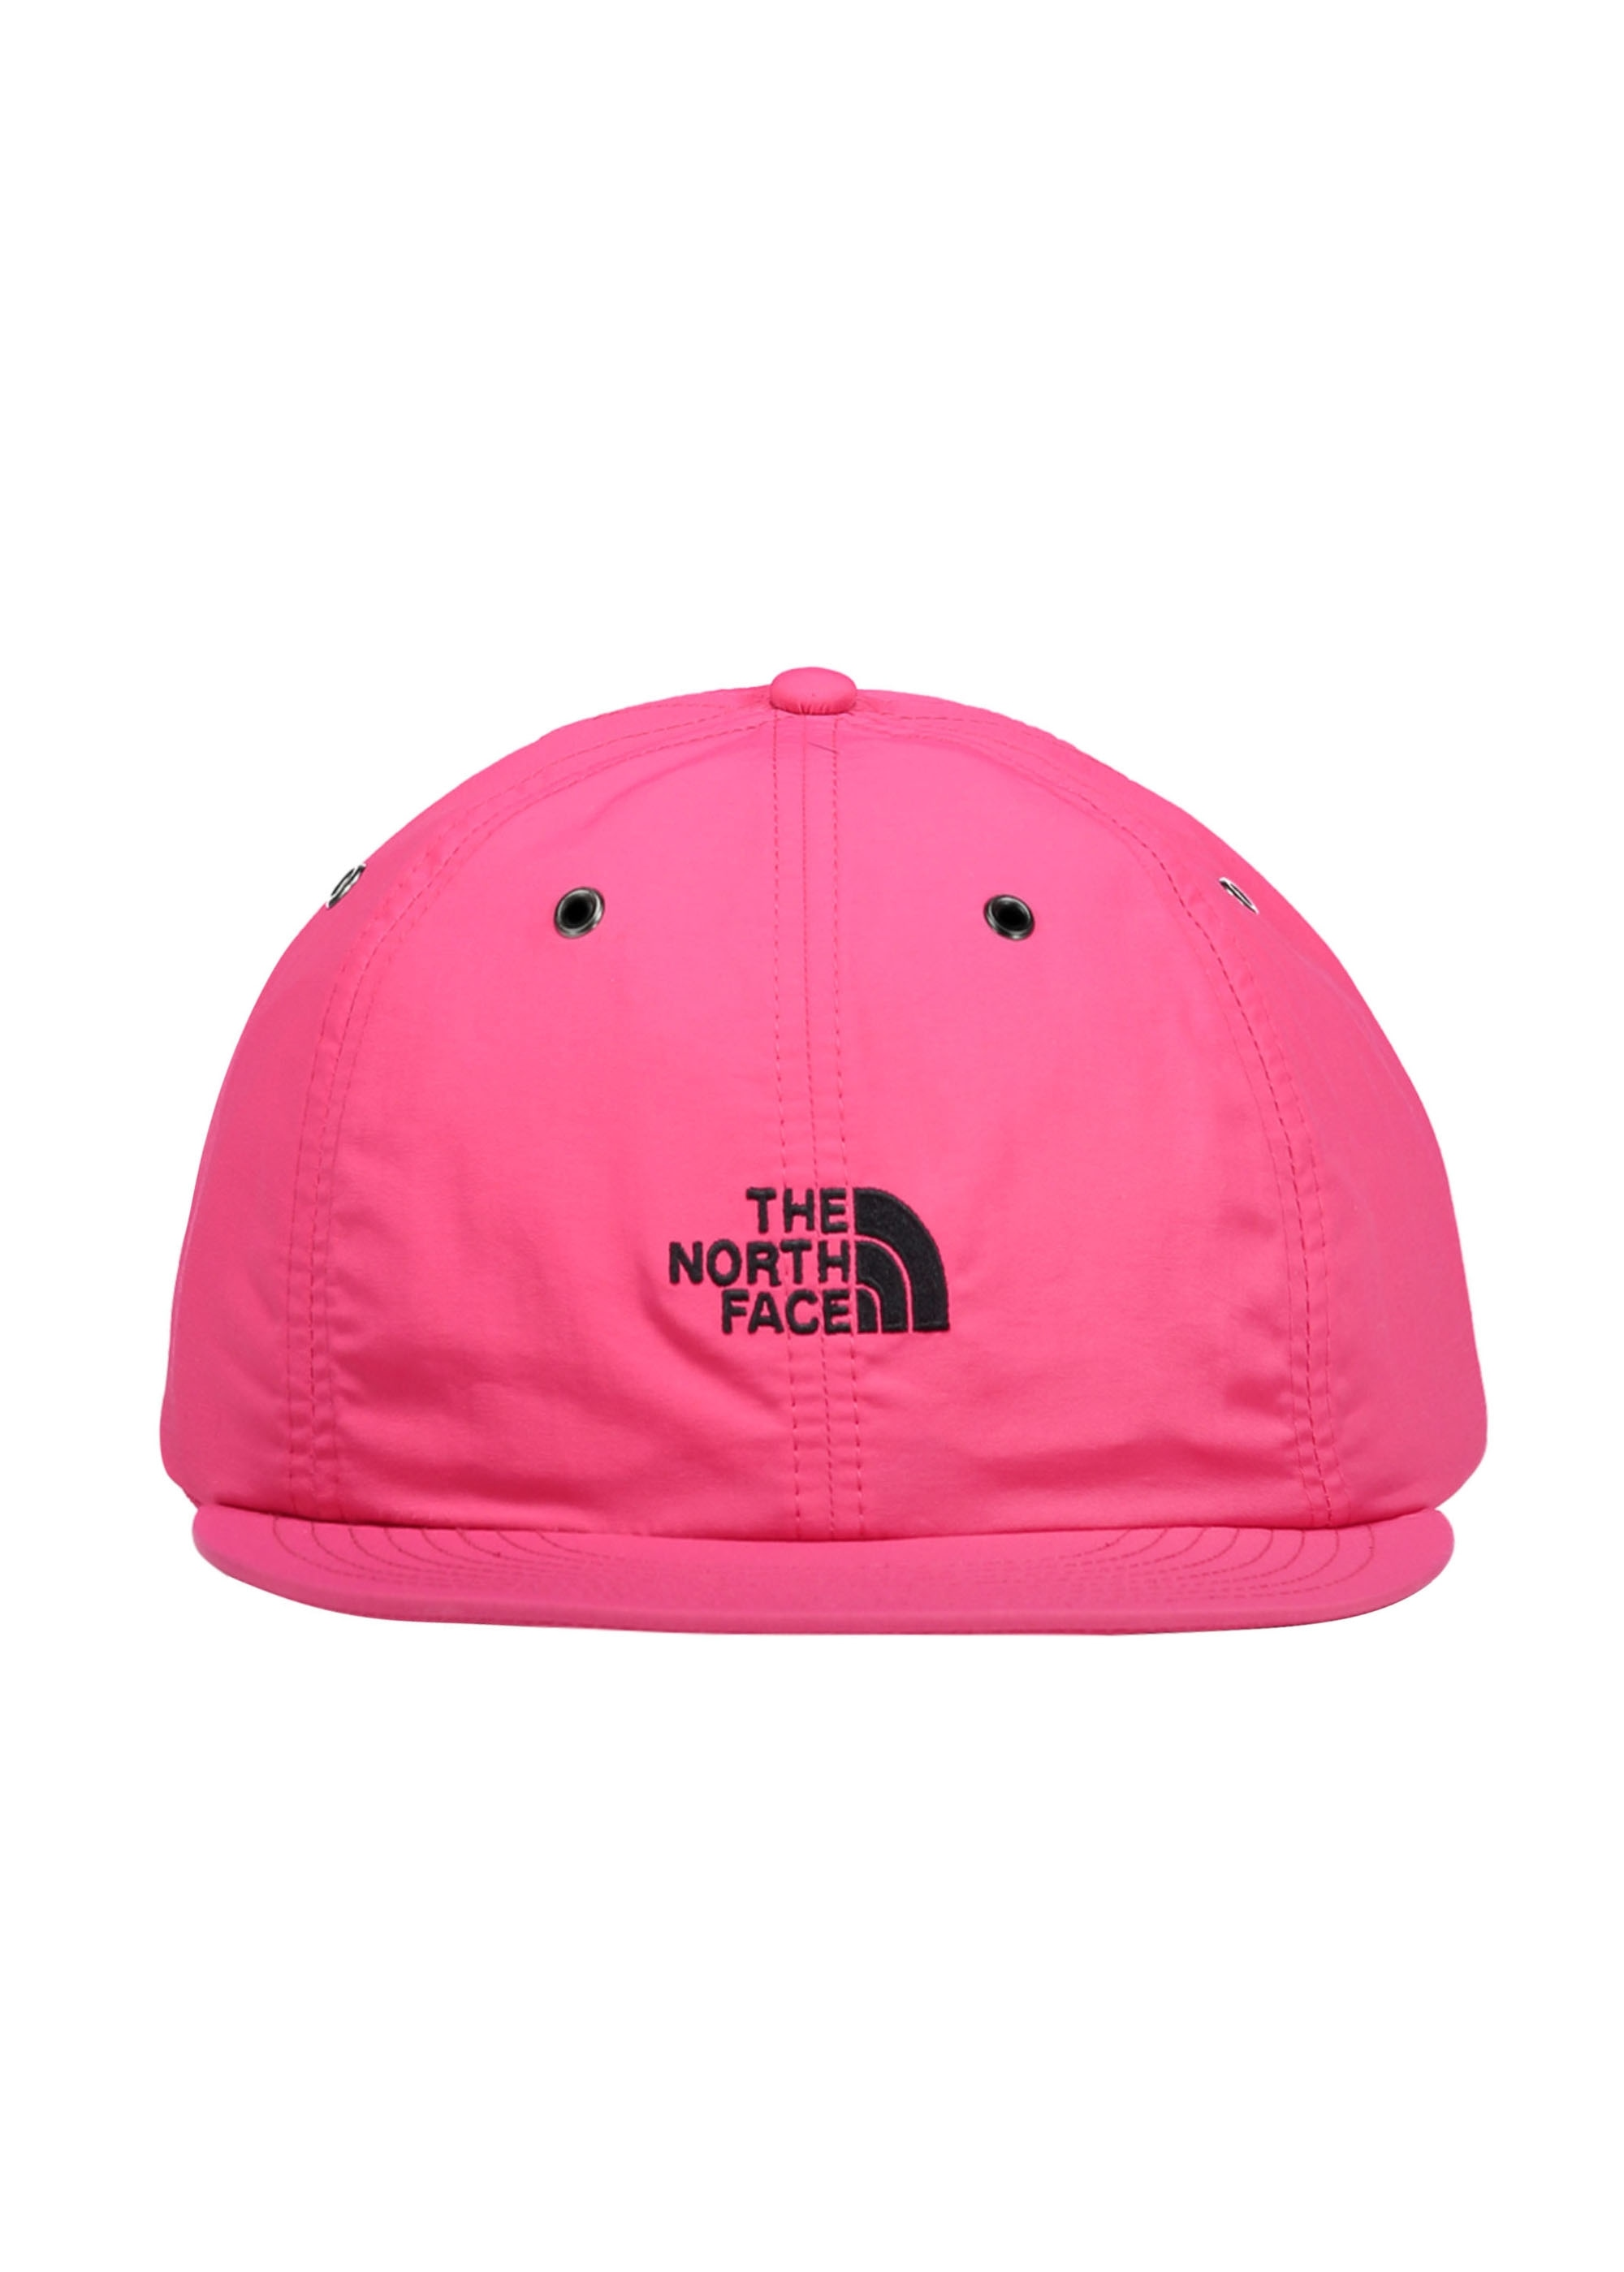 4daf137a The North Face Throwback Tech Hat - Raspberry Red - Headwear from ...